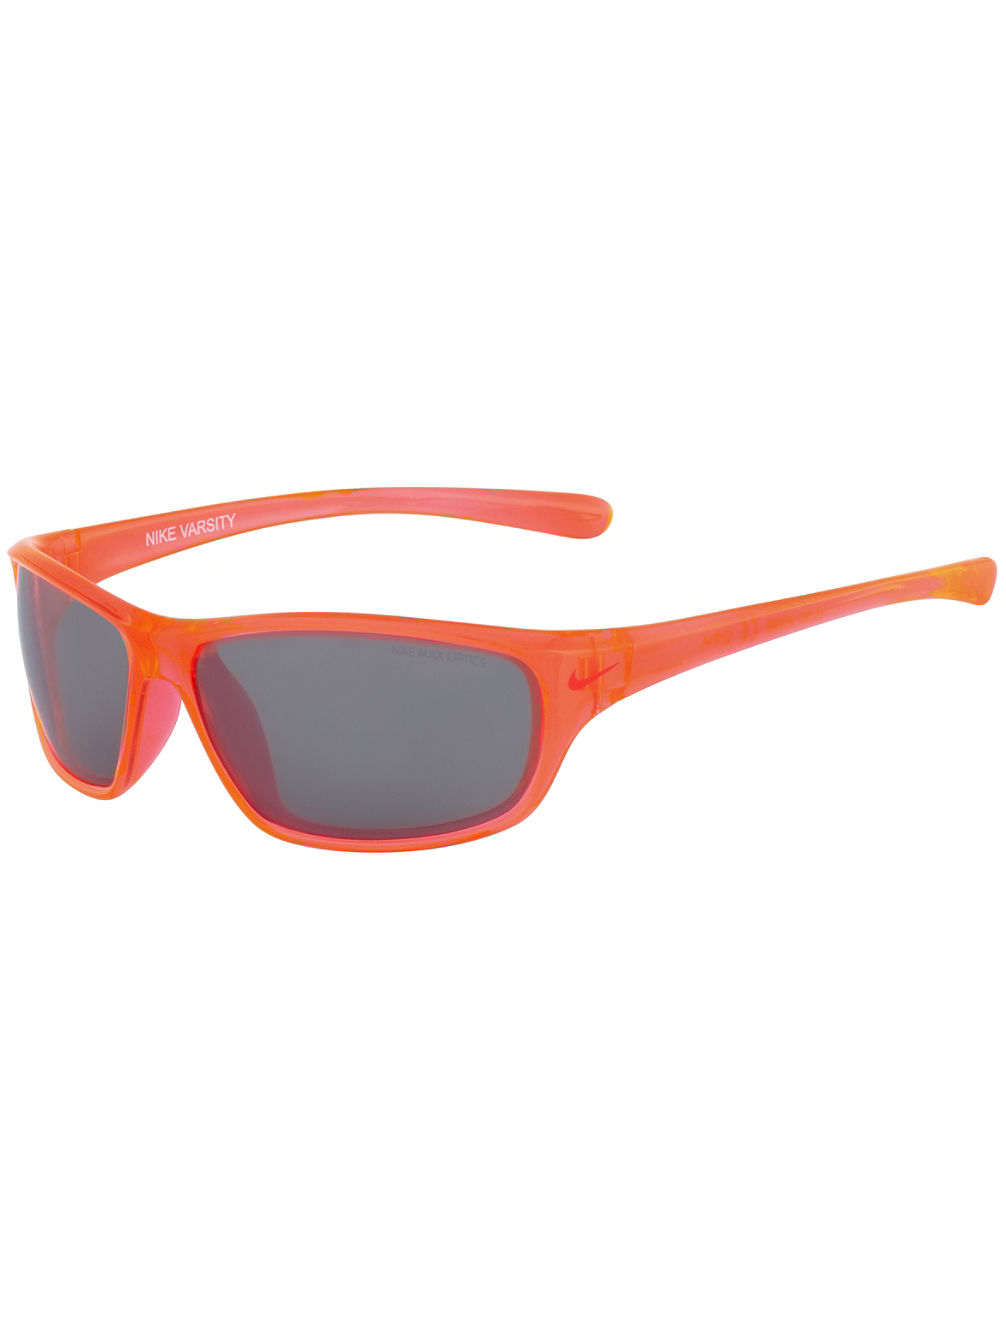 Varsity crystal hyper crimson/gym red Sonnenbrille